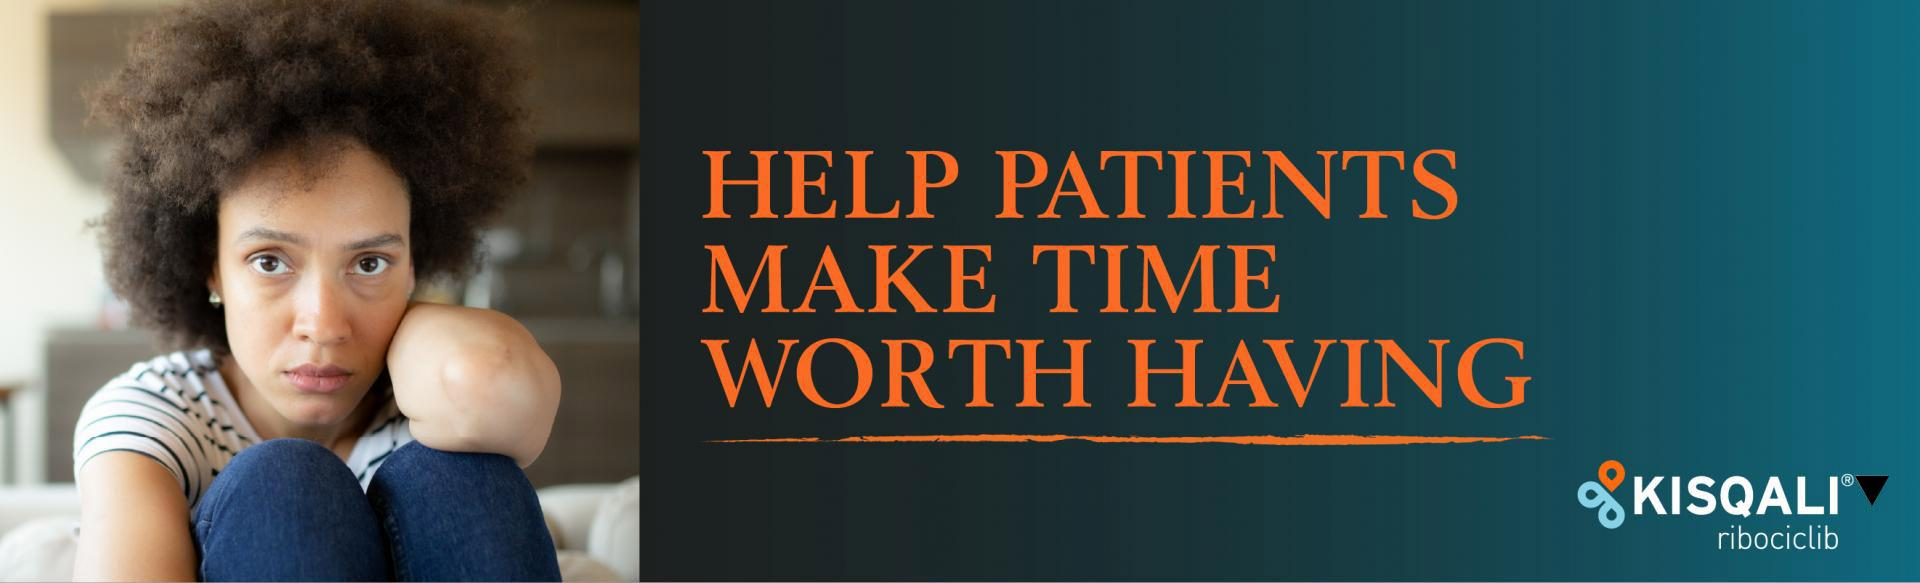 Top banner. Woman headshot. HELP PATIENTS MAKE TIME WORTH HAVING